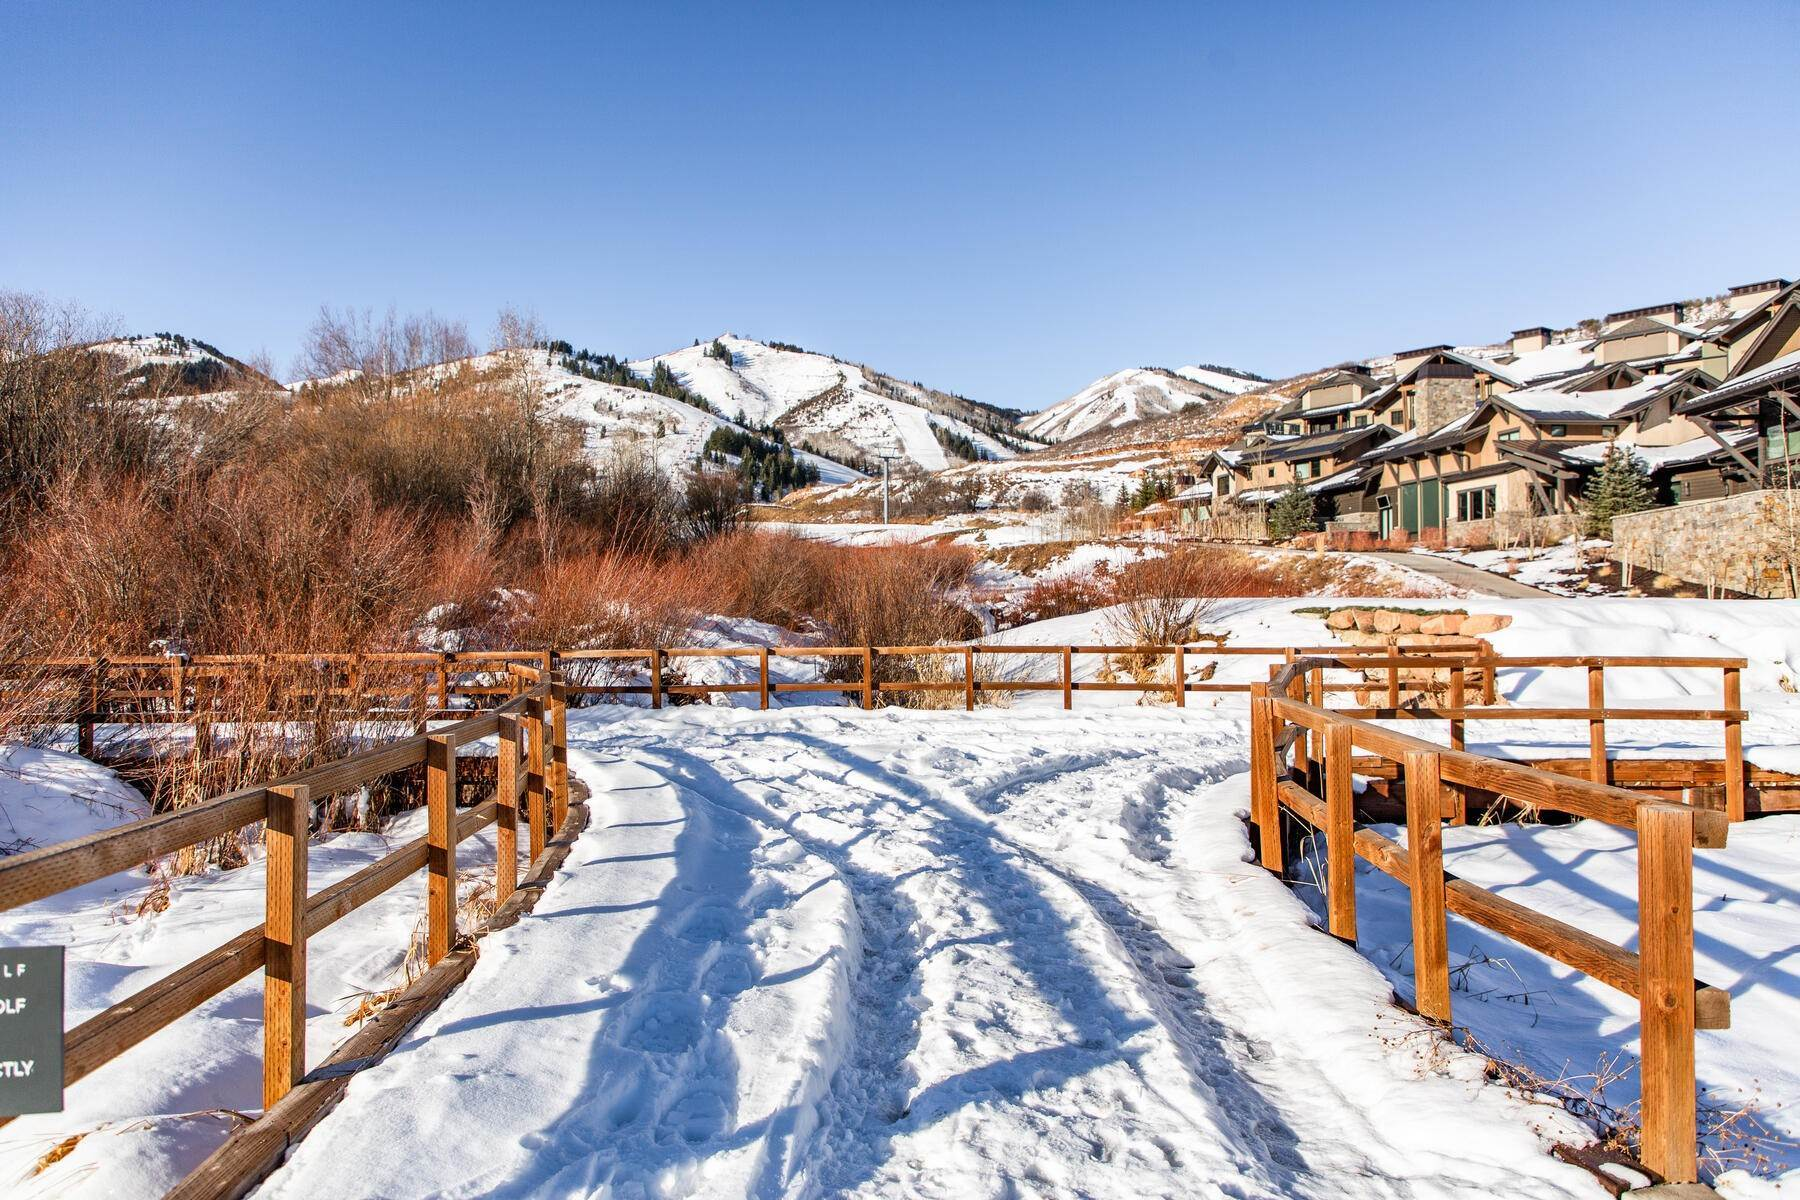 13. Condominiums for Sale at Introducing Park City's Newest Boutique Ski Hotel, The Ascent Park City! 4080 N Cooper Lane #339 Park City, Utah 84098 United States